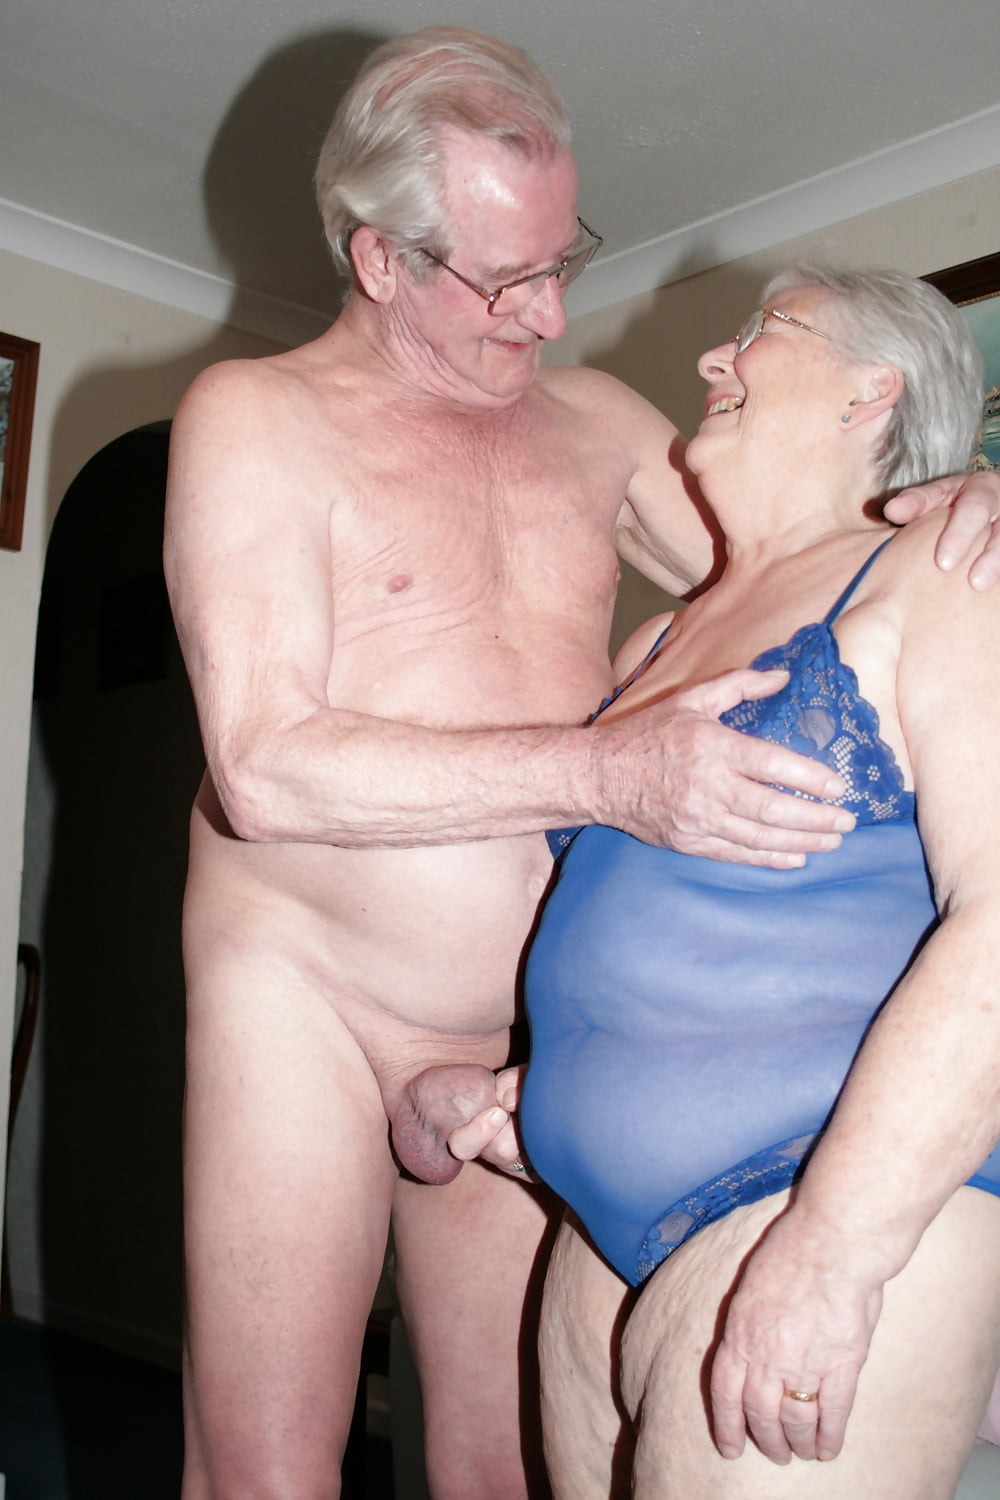 older-couples-teaching-younger-couples-videos-orangutan-have-sex